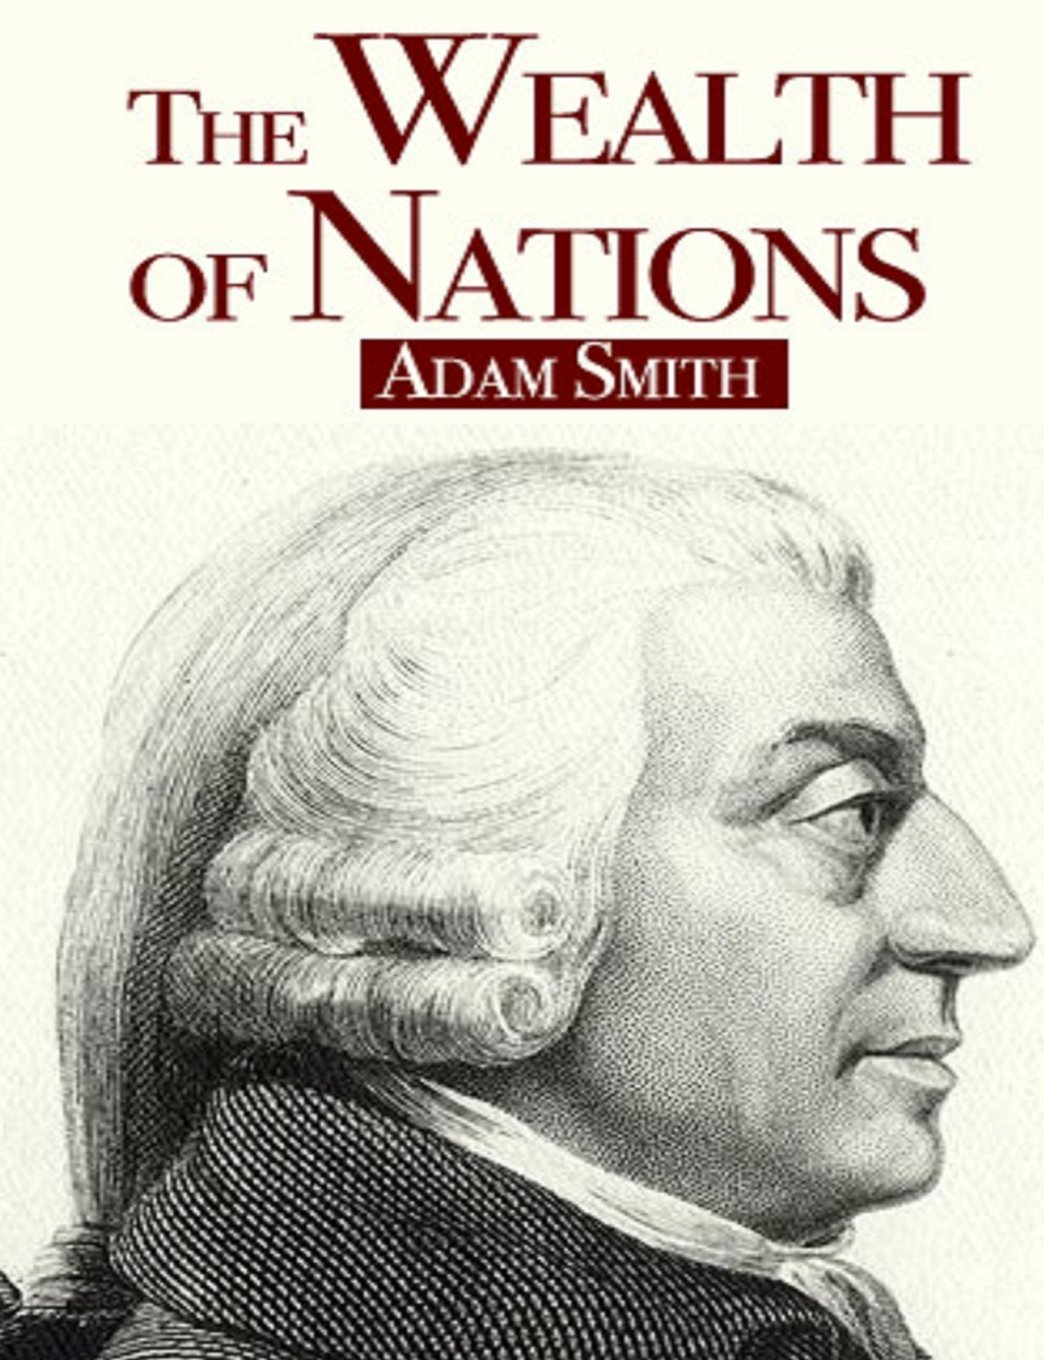 a short review of the wealth of nations a book by adam smith Book review: the wealth of nations by adam smith allthethings why is the wealth of nations so important adam smith and classical economics.